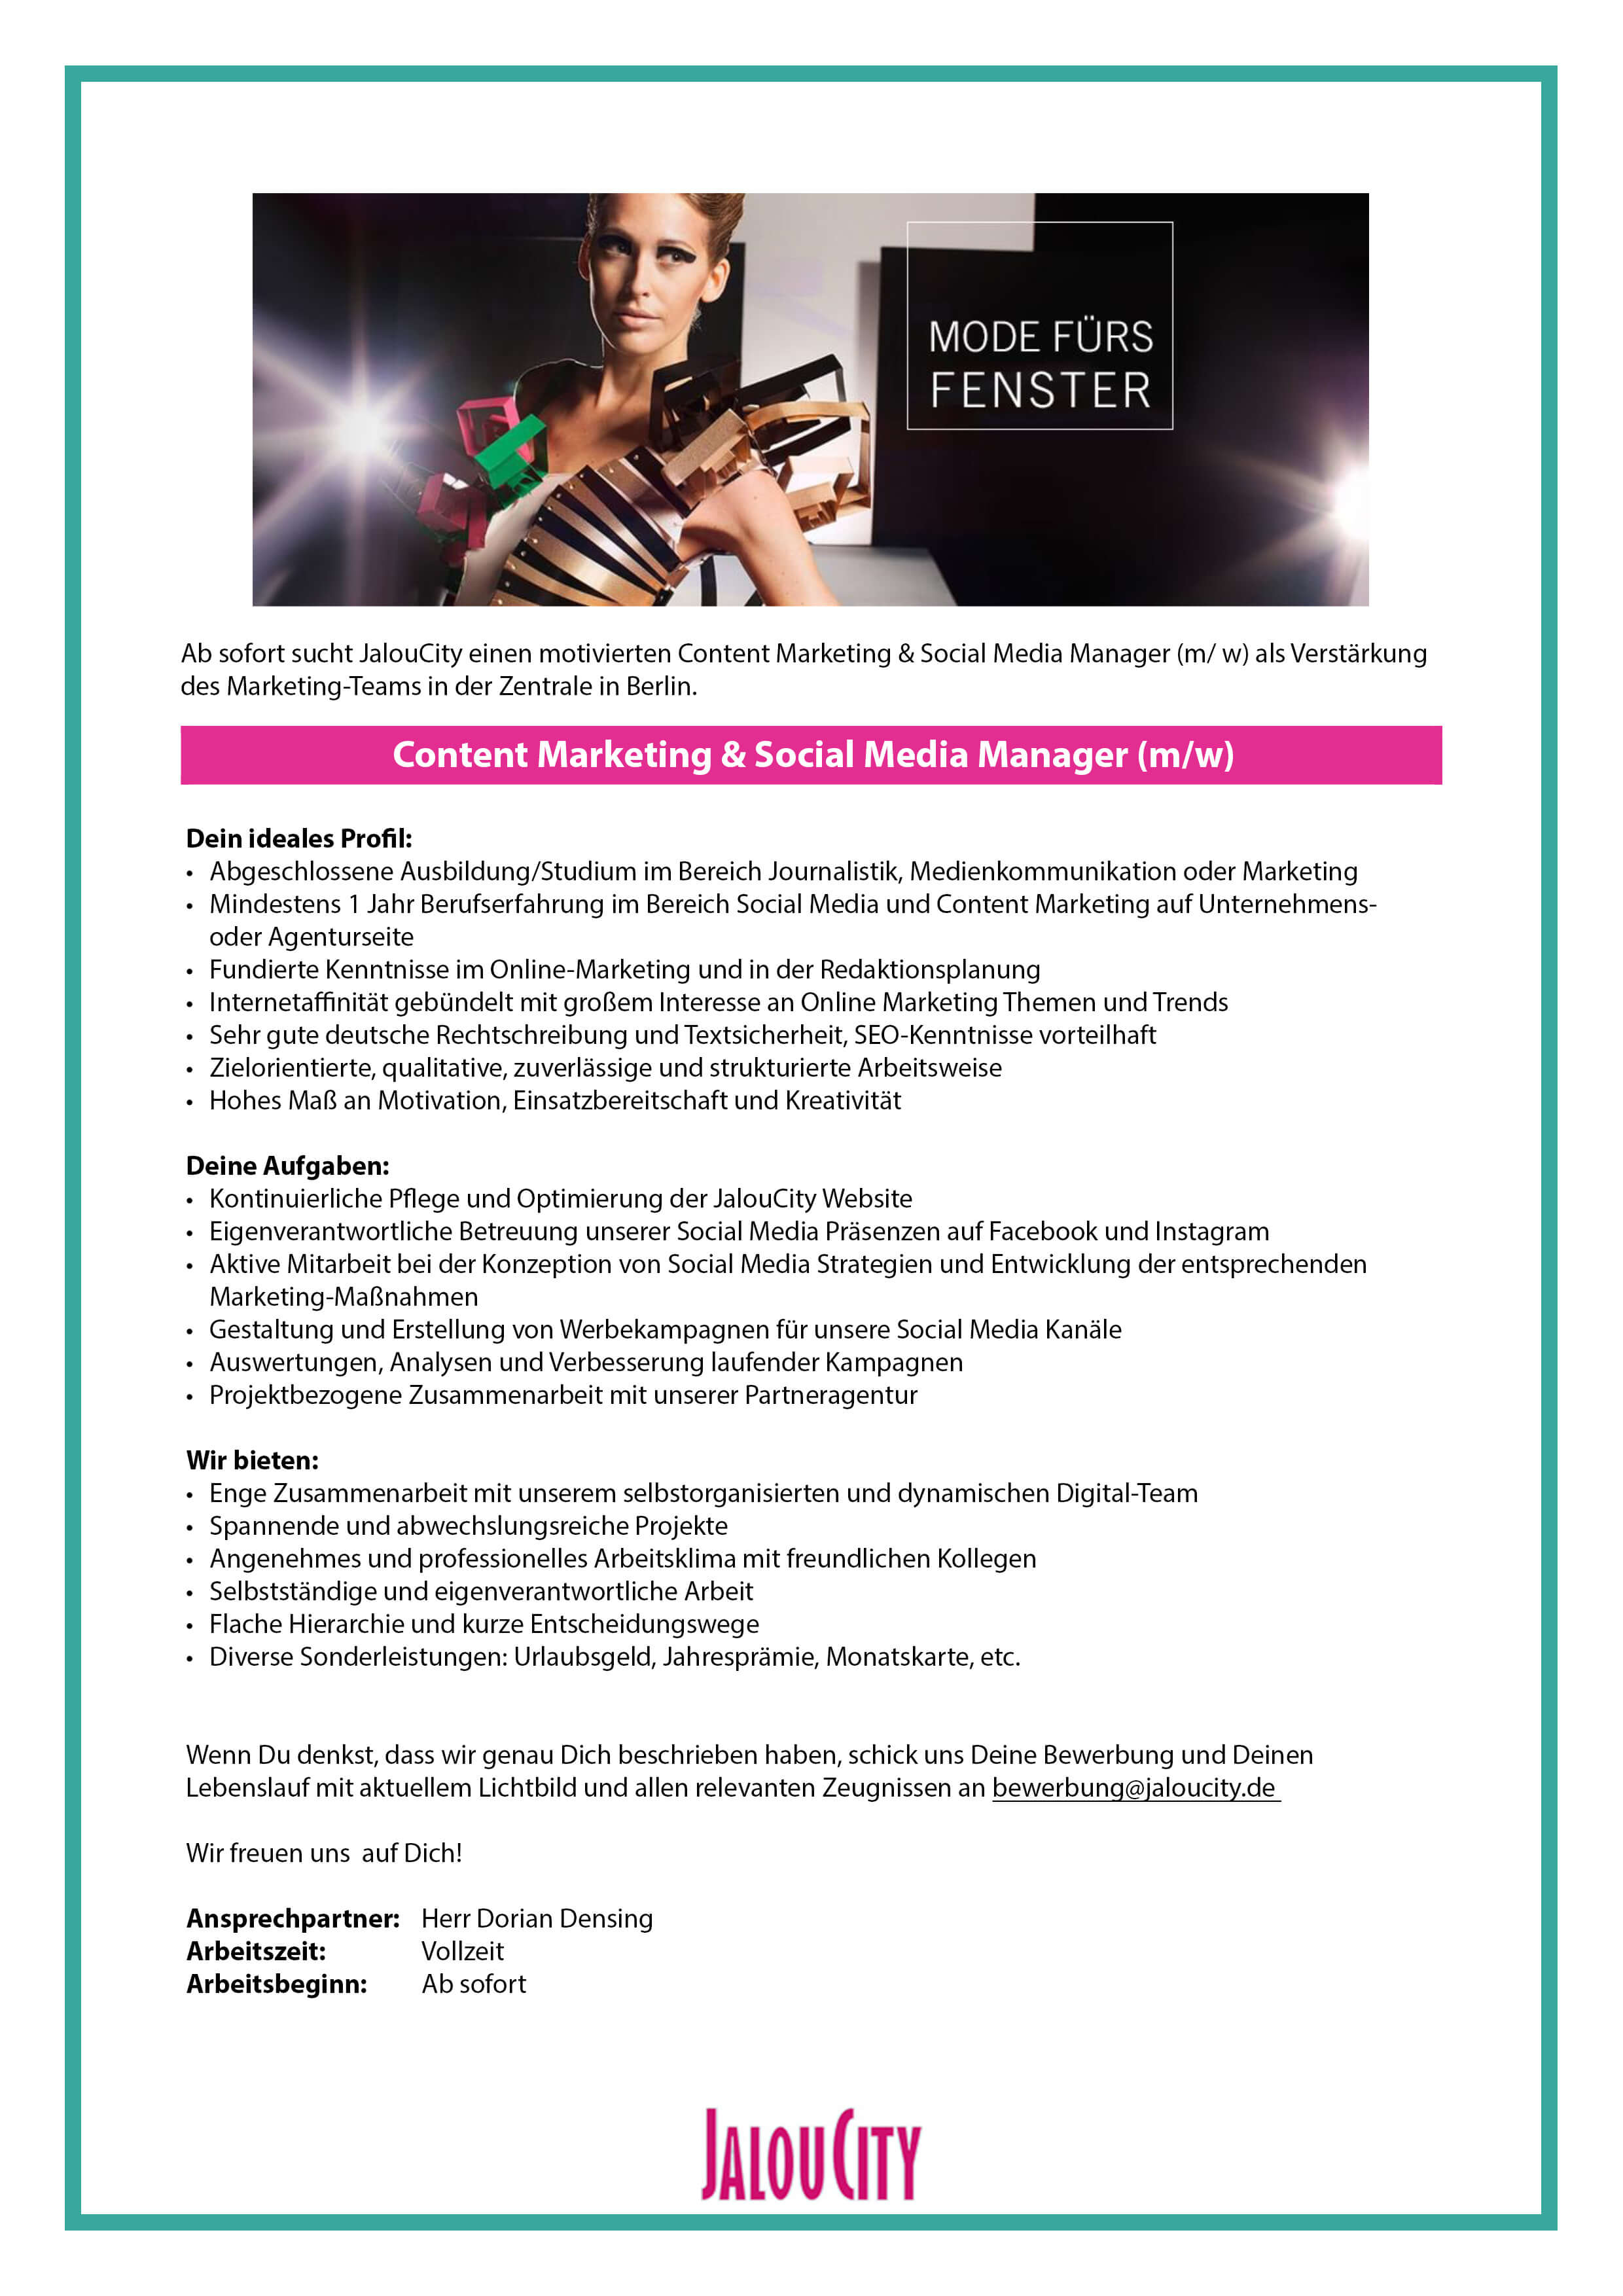 Social Media und Content Marketing Manager  (m/w) bei JalouCity